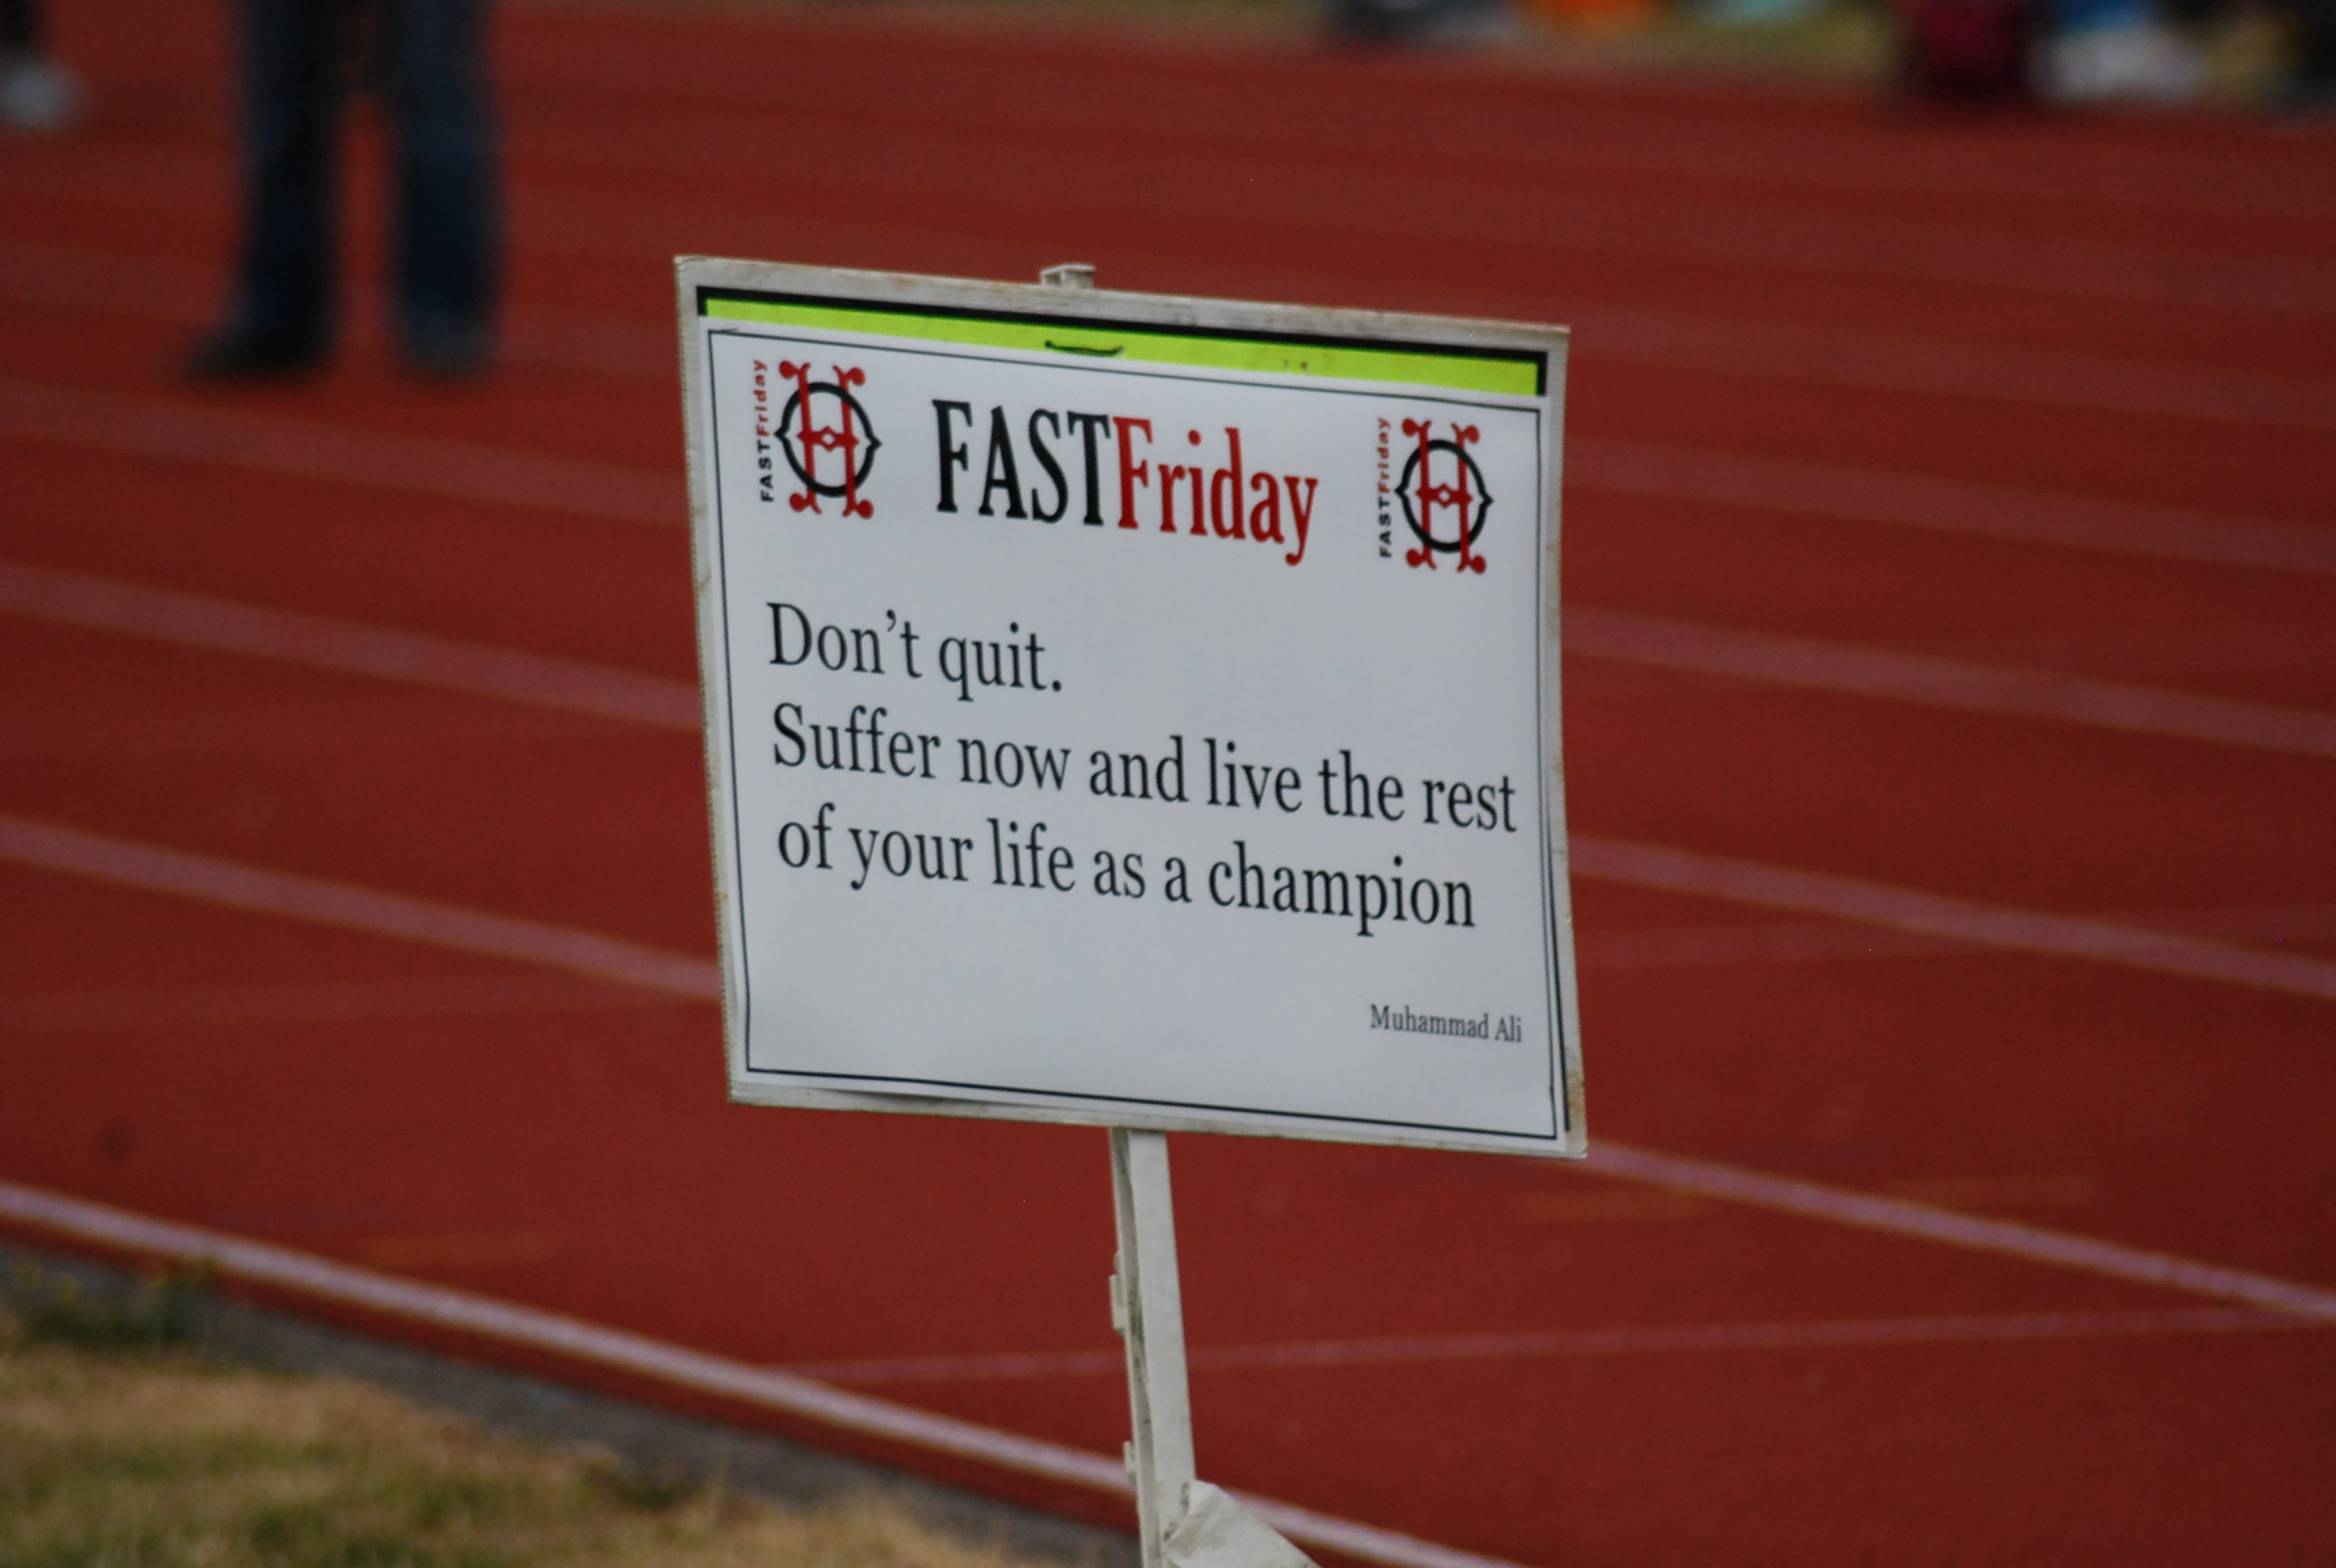 #FastFriday at Walthamstow track